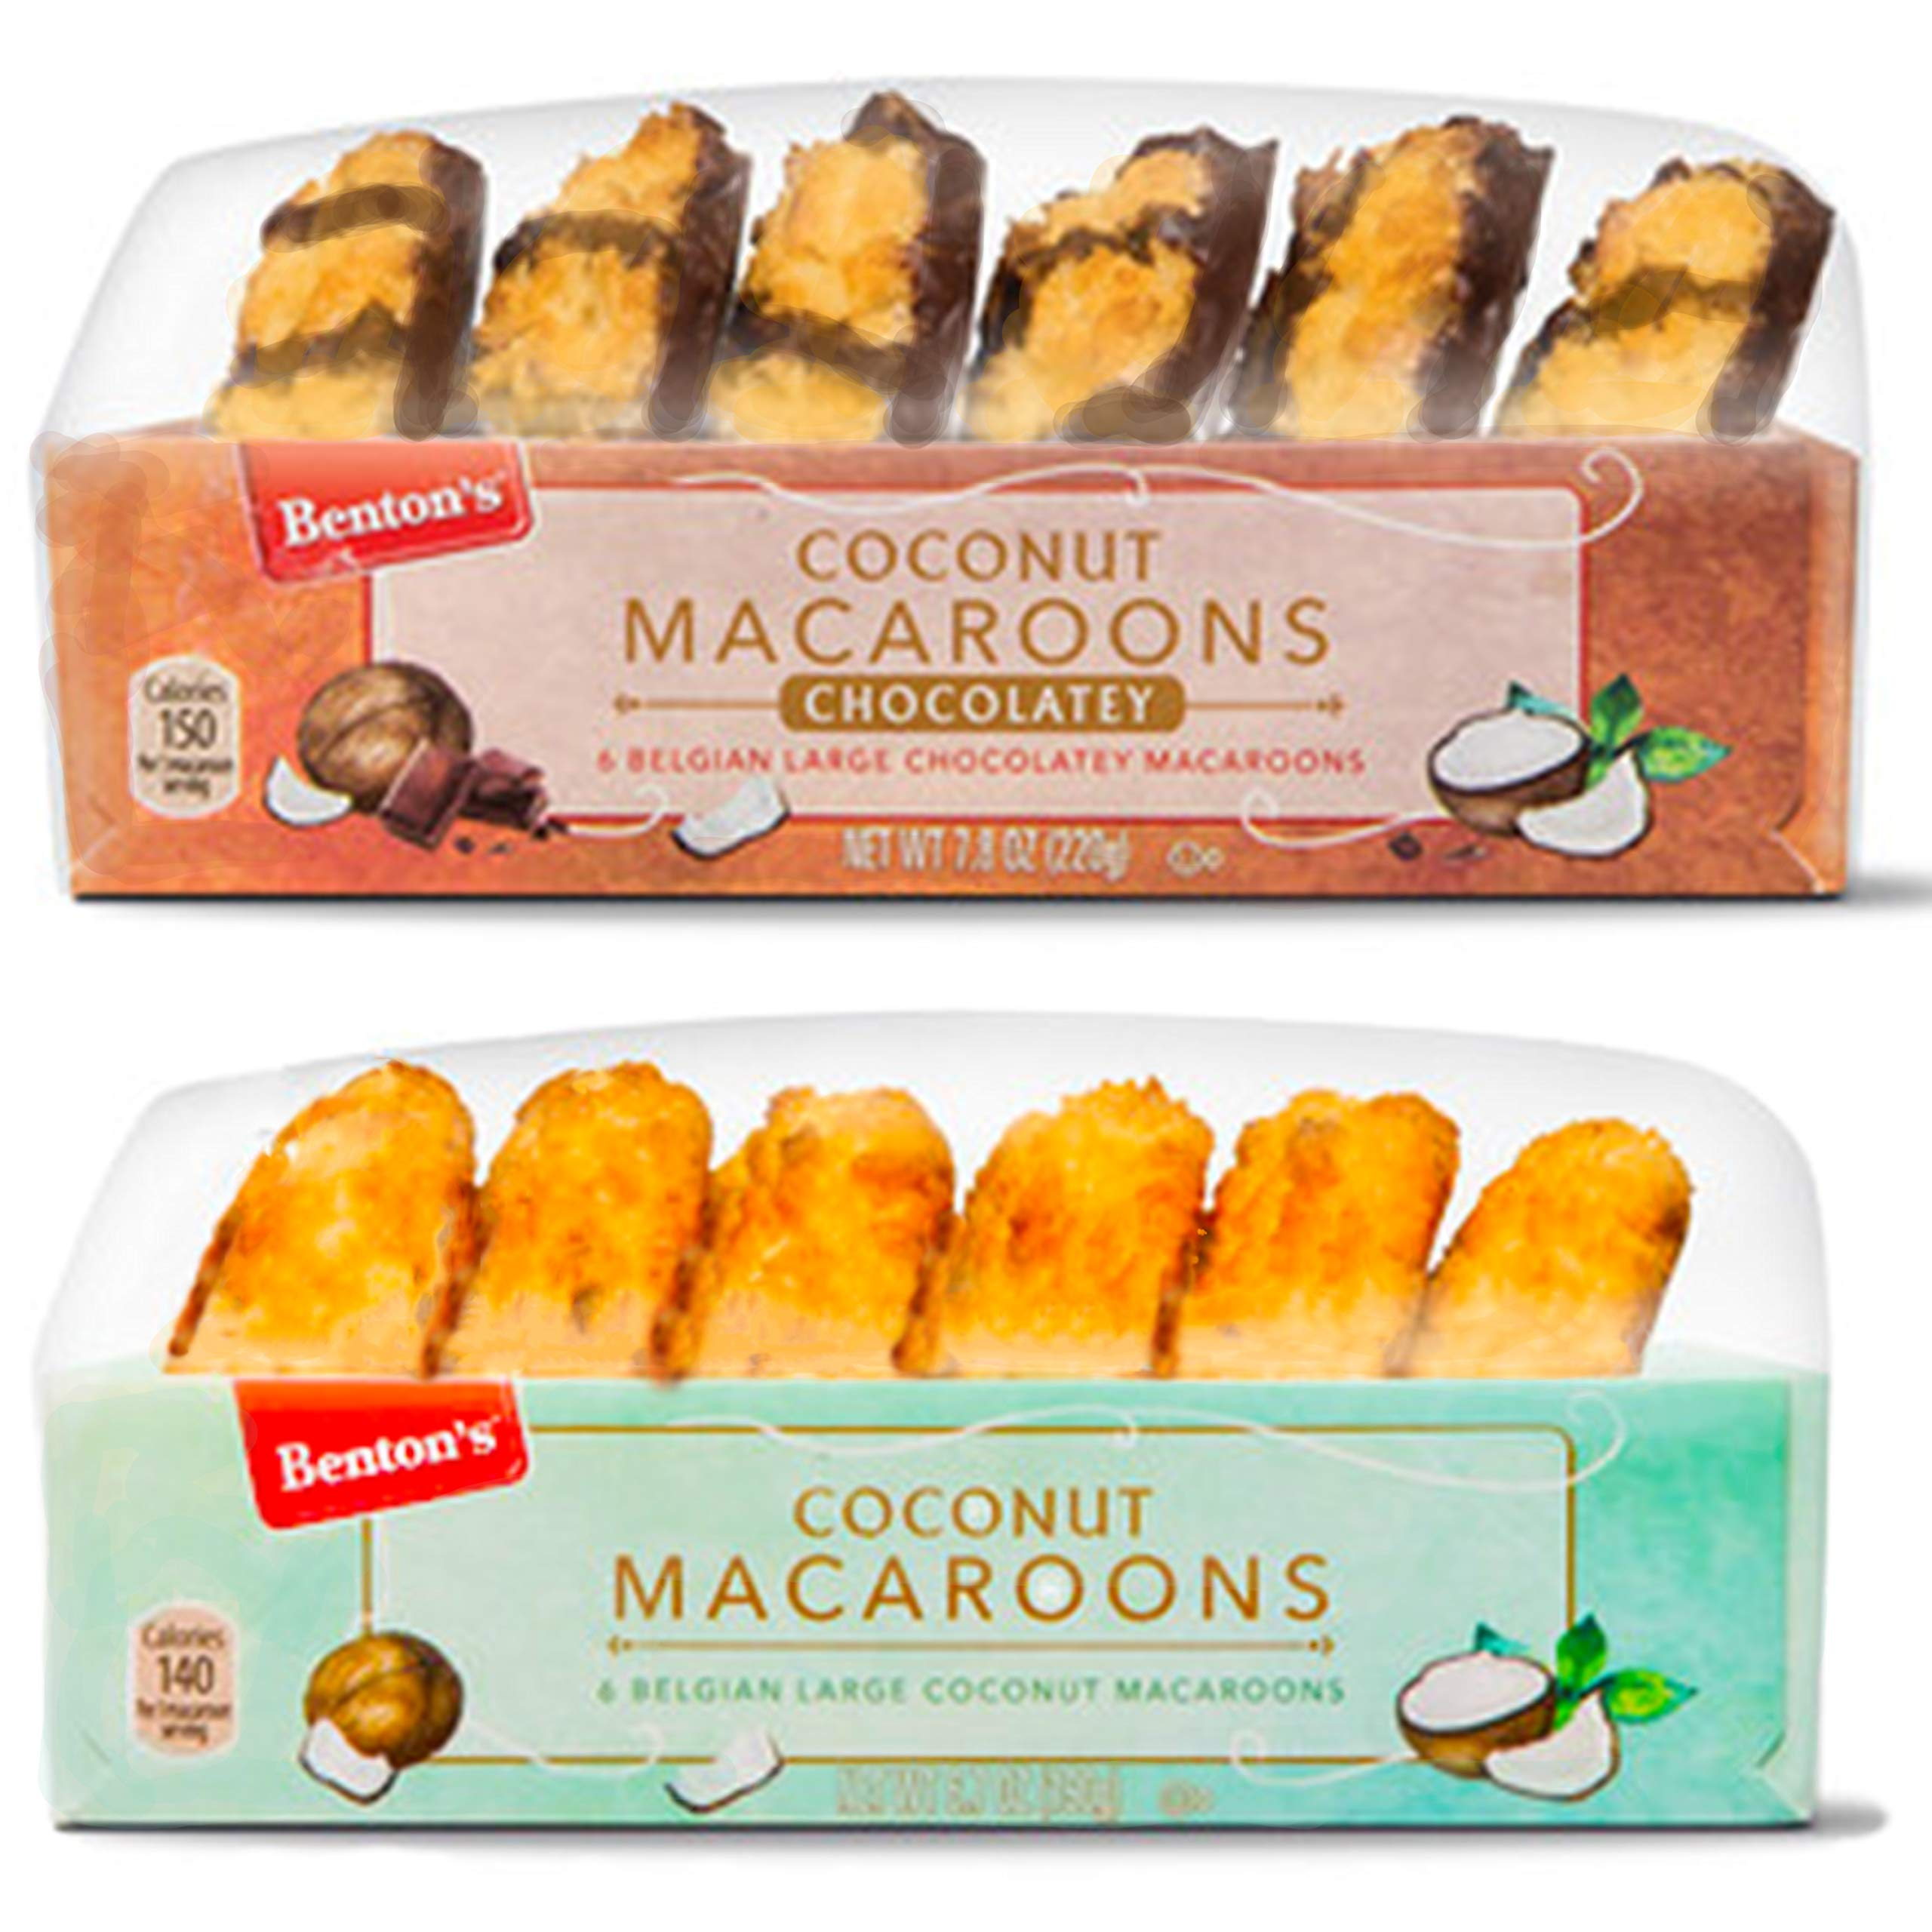 Belgian Coconut Macaroons Soft Macaroons Jumbo Size 2 5 Inches Imported From Belgium Each Box Contains 6 Macaroons Combo Buy Online In Aruba At Aruba Desertcart Com Productid 128874318